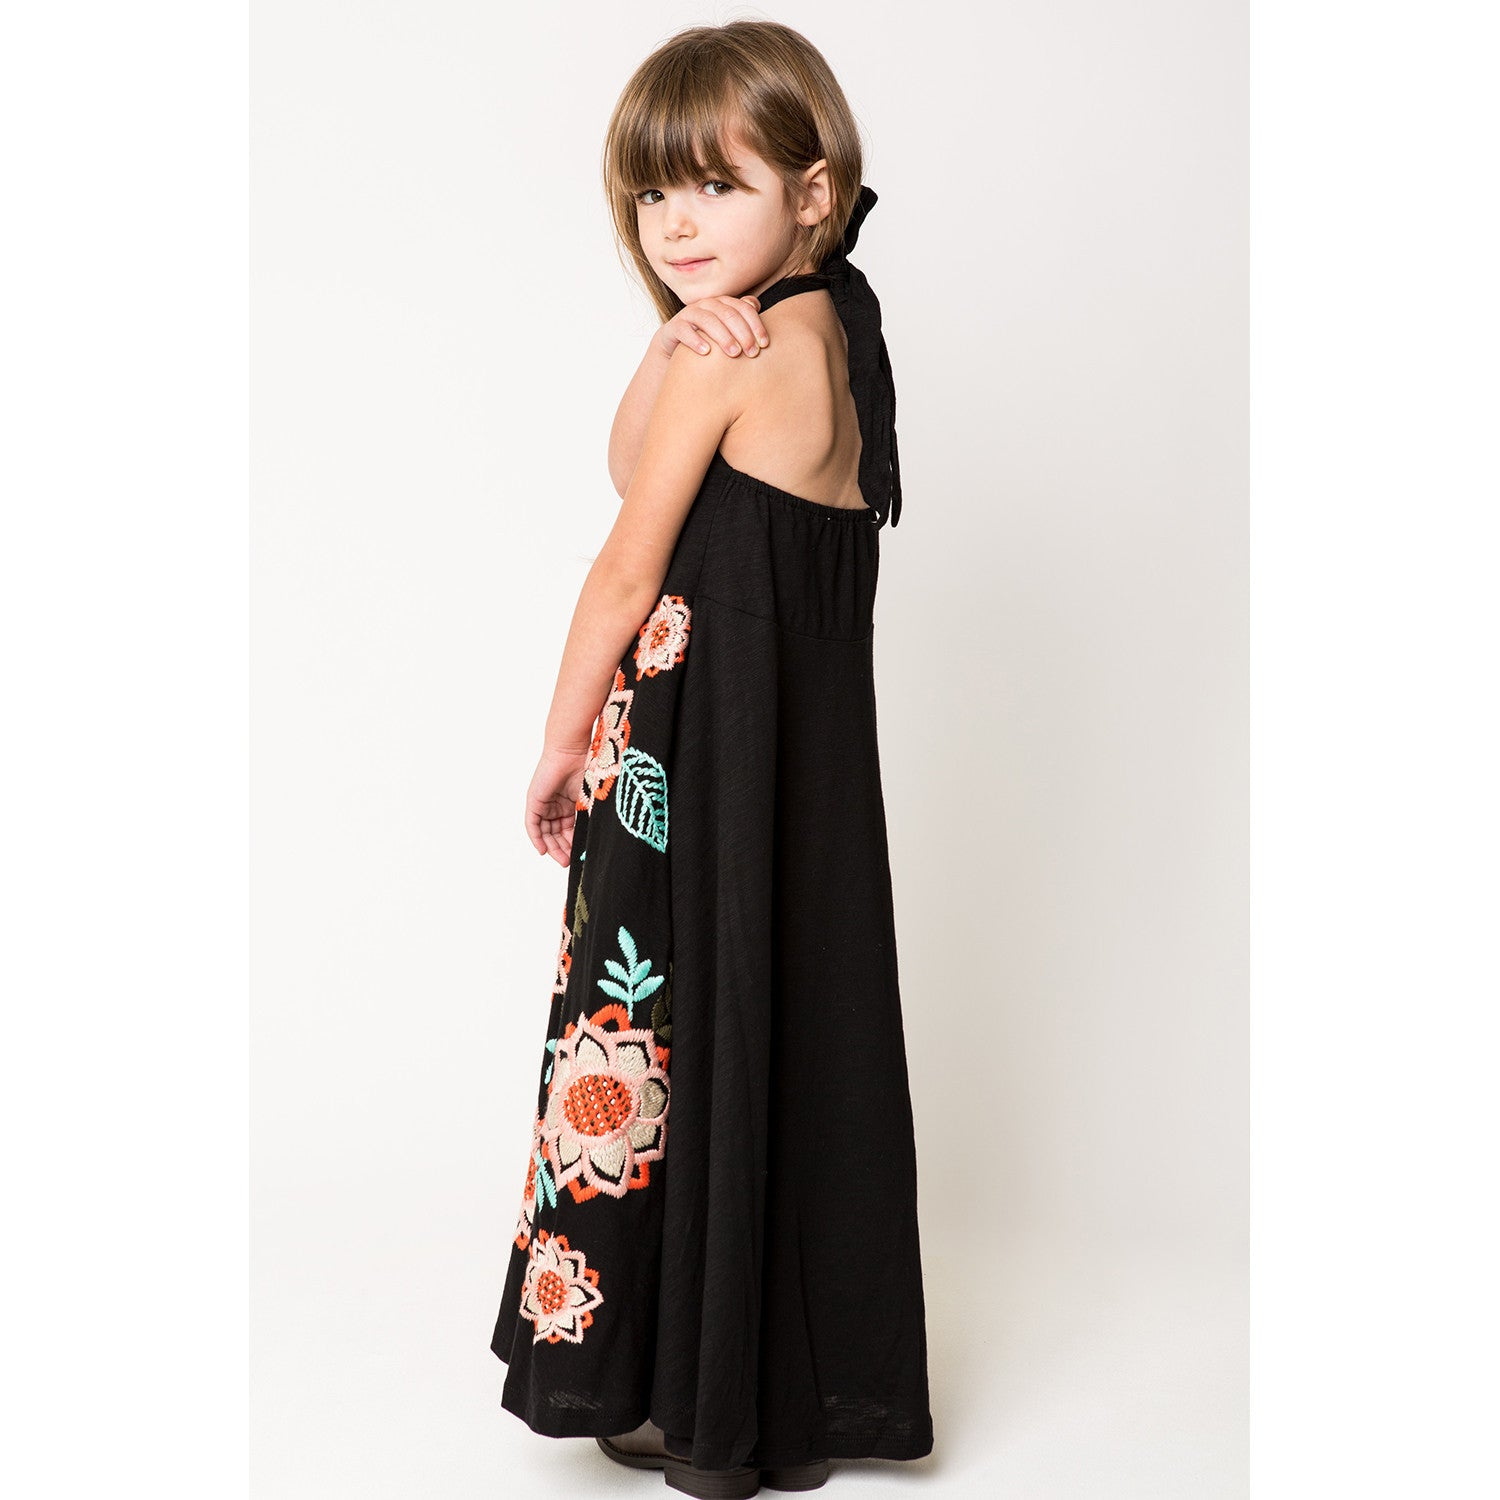 Bird and Floral Embroidery Halter Maxi Dress black side view 2